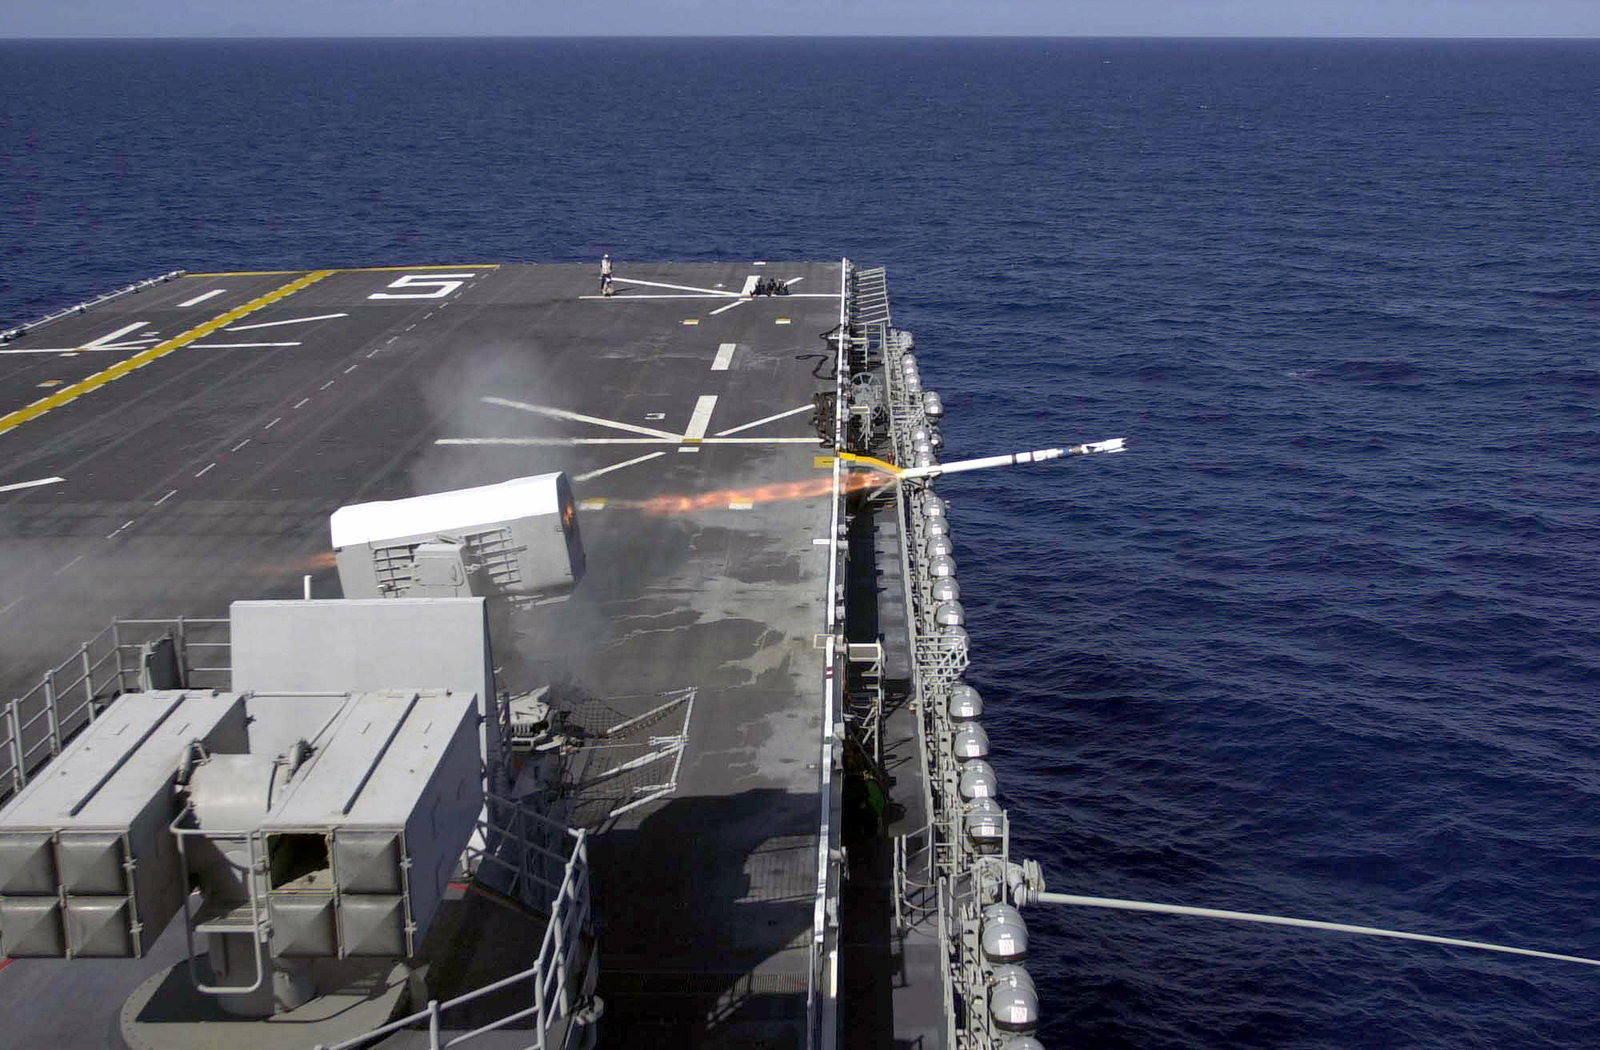 A RIM-116 Rolling Airframe Missile is launched after locking onto its target during a live fire missile exercise on board the USS BATAAN (LHD 5) (Wasp class)